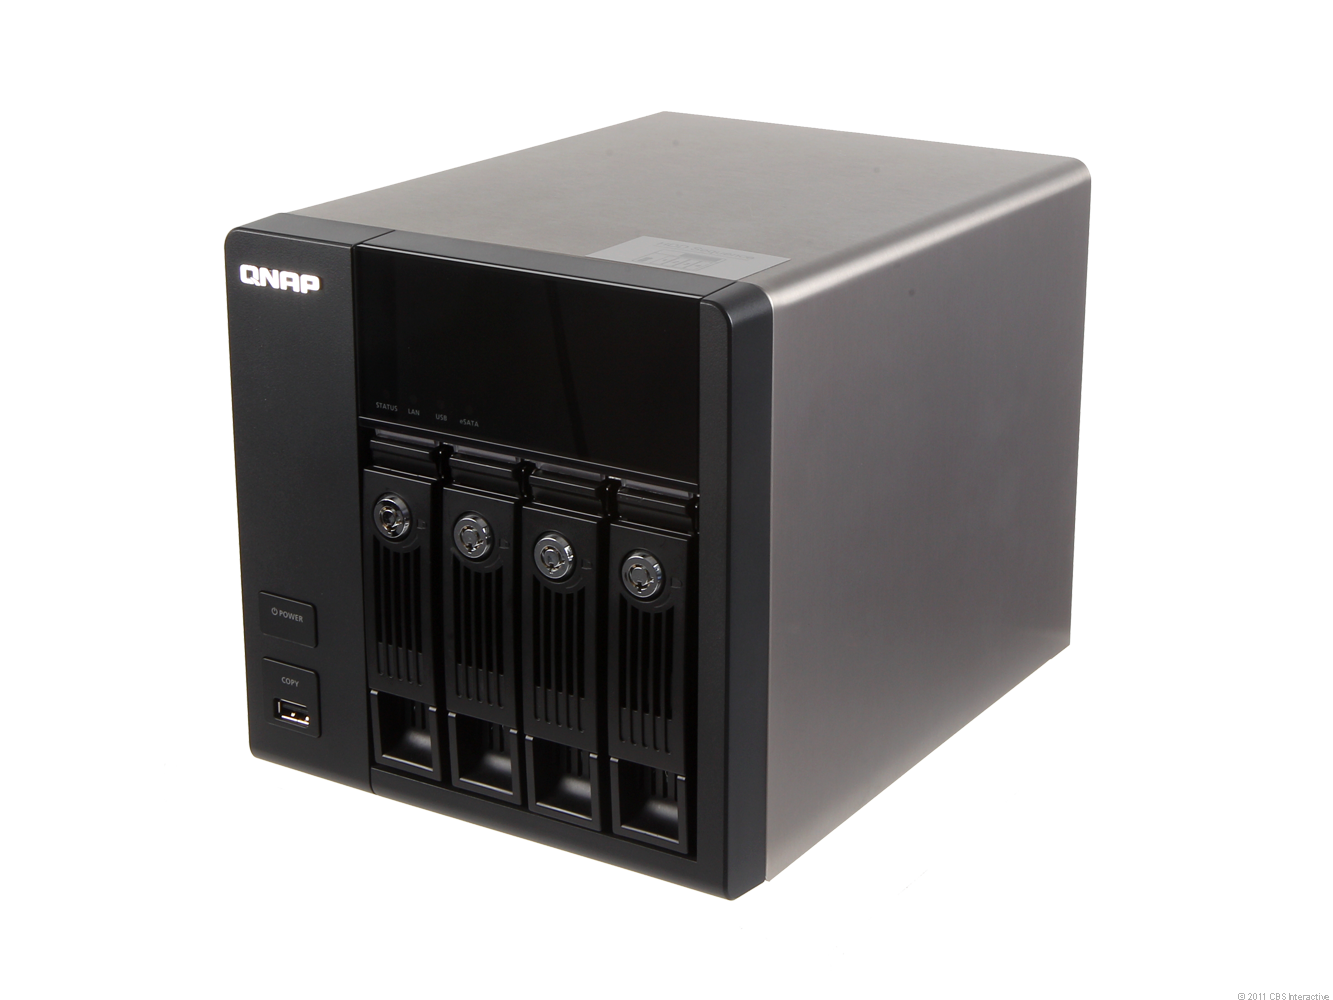 A high-end NAS server from QNAP.